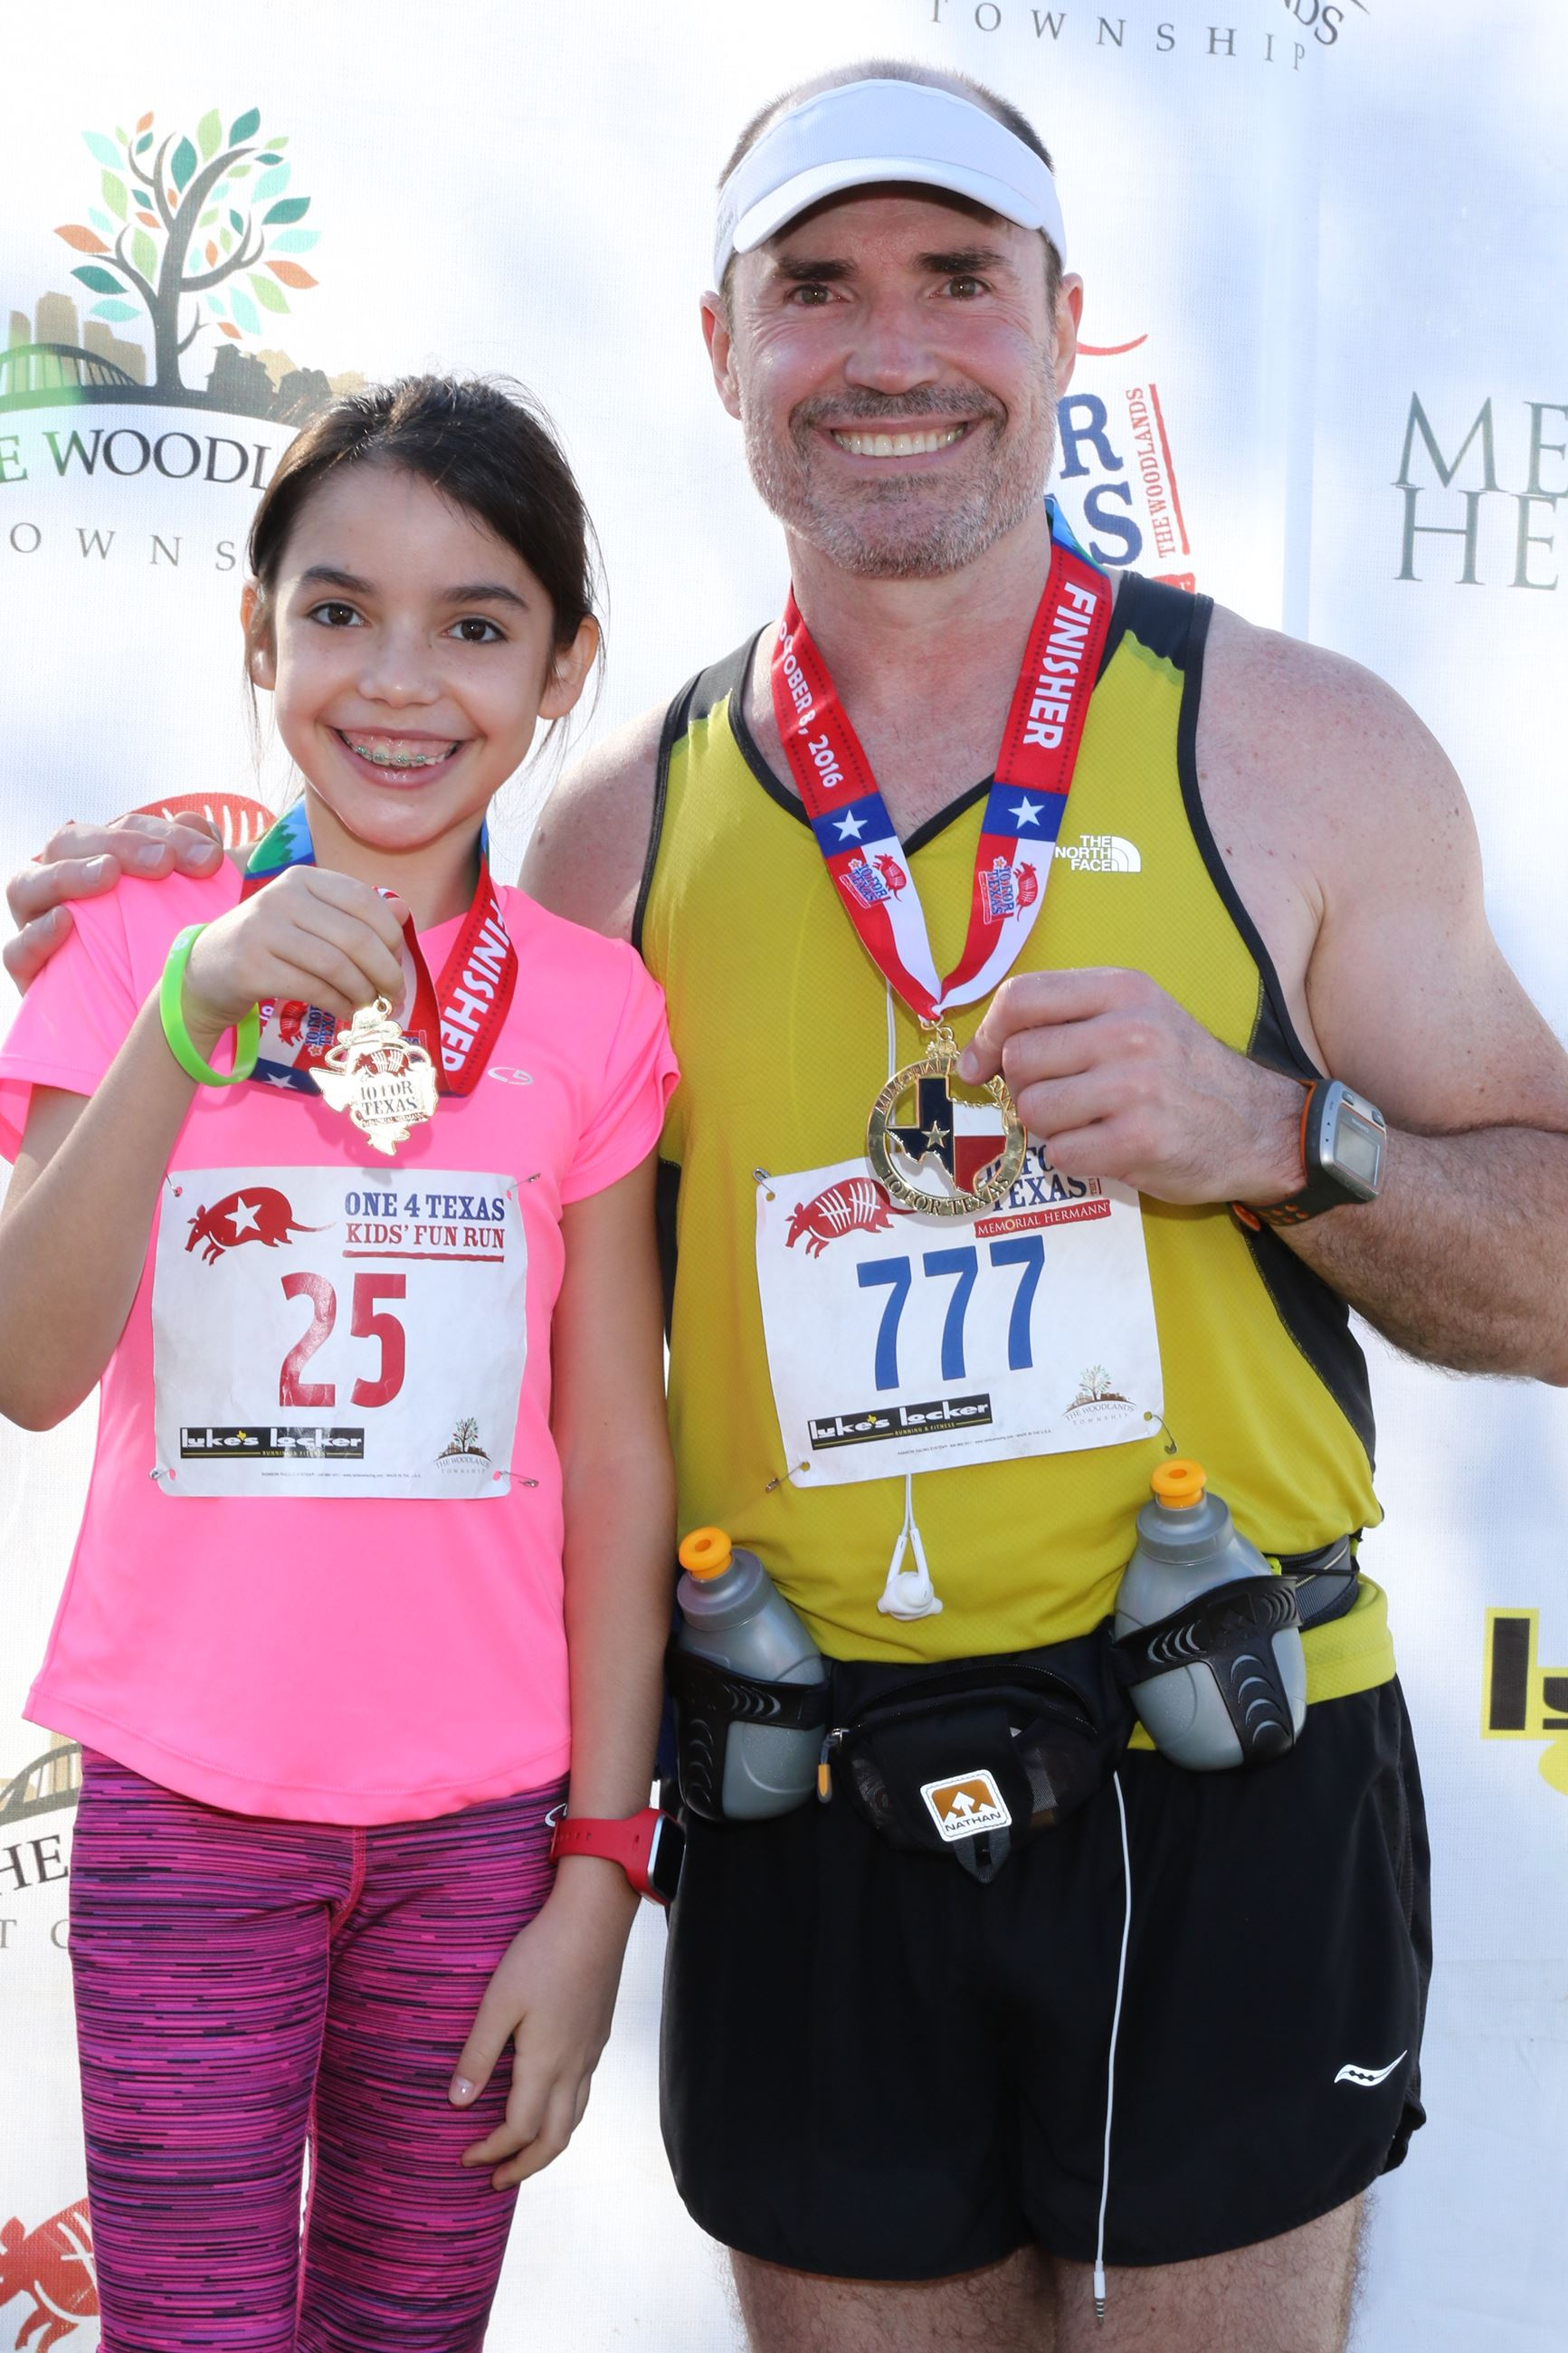 104TX16 Father/Daughter Medals